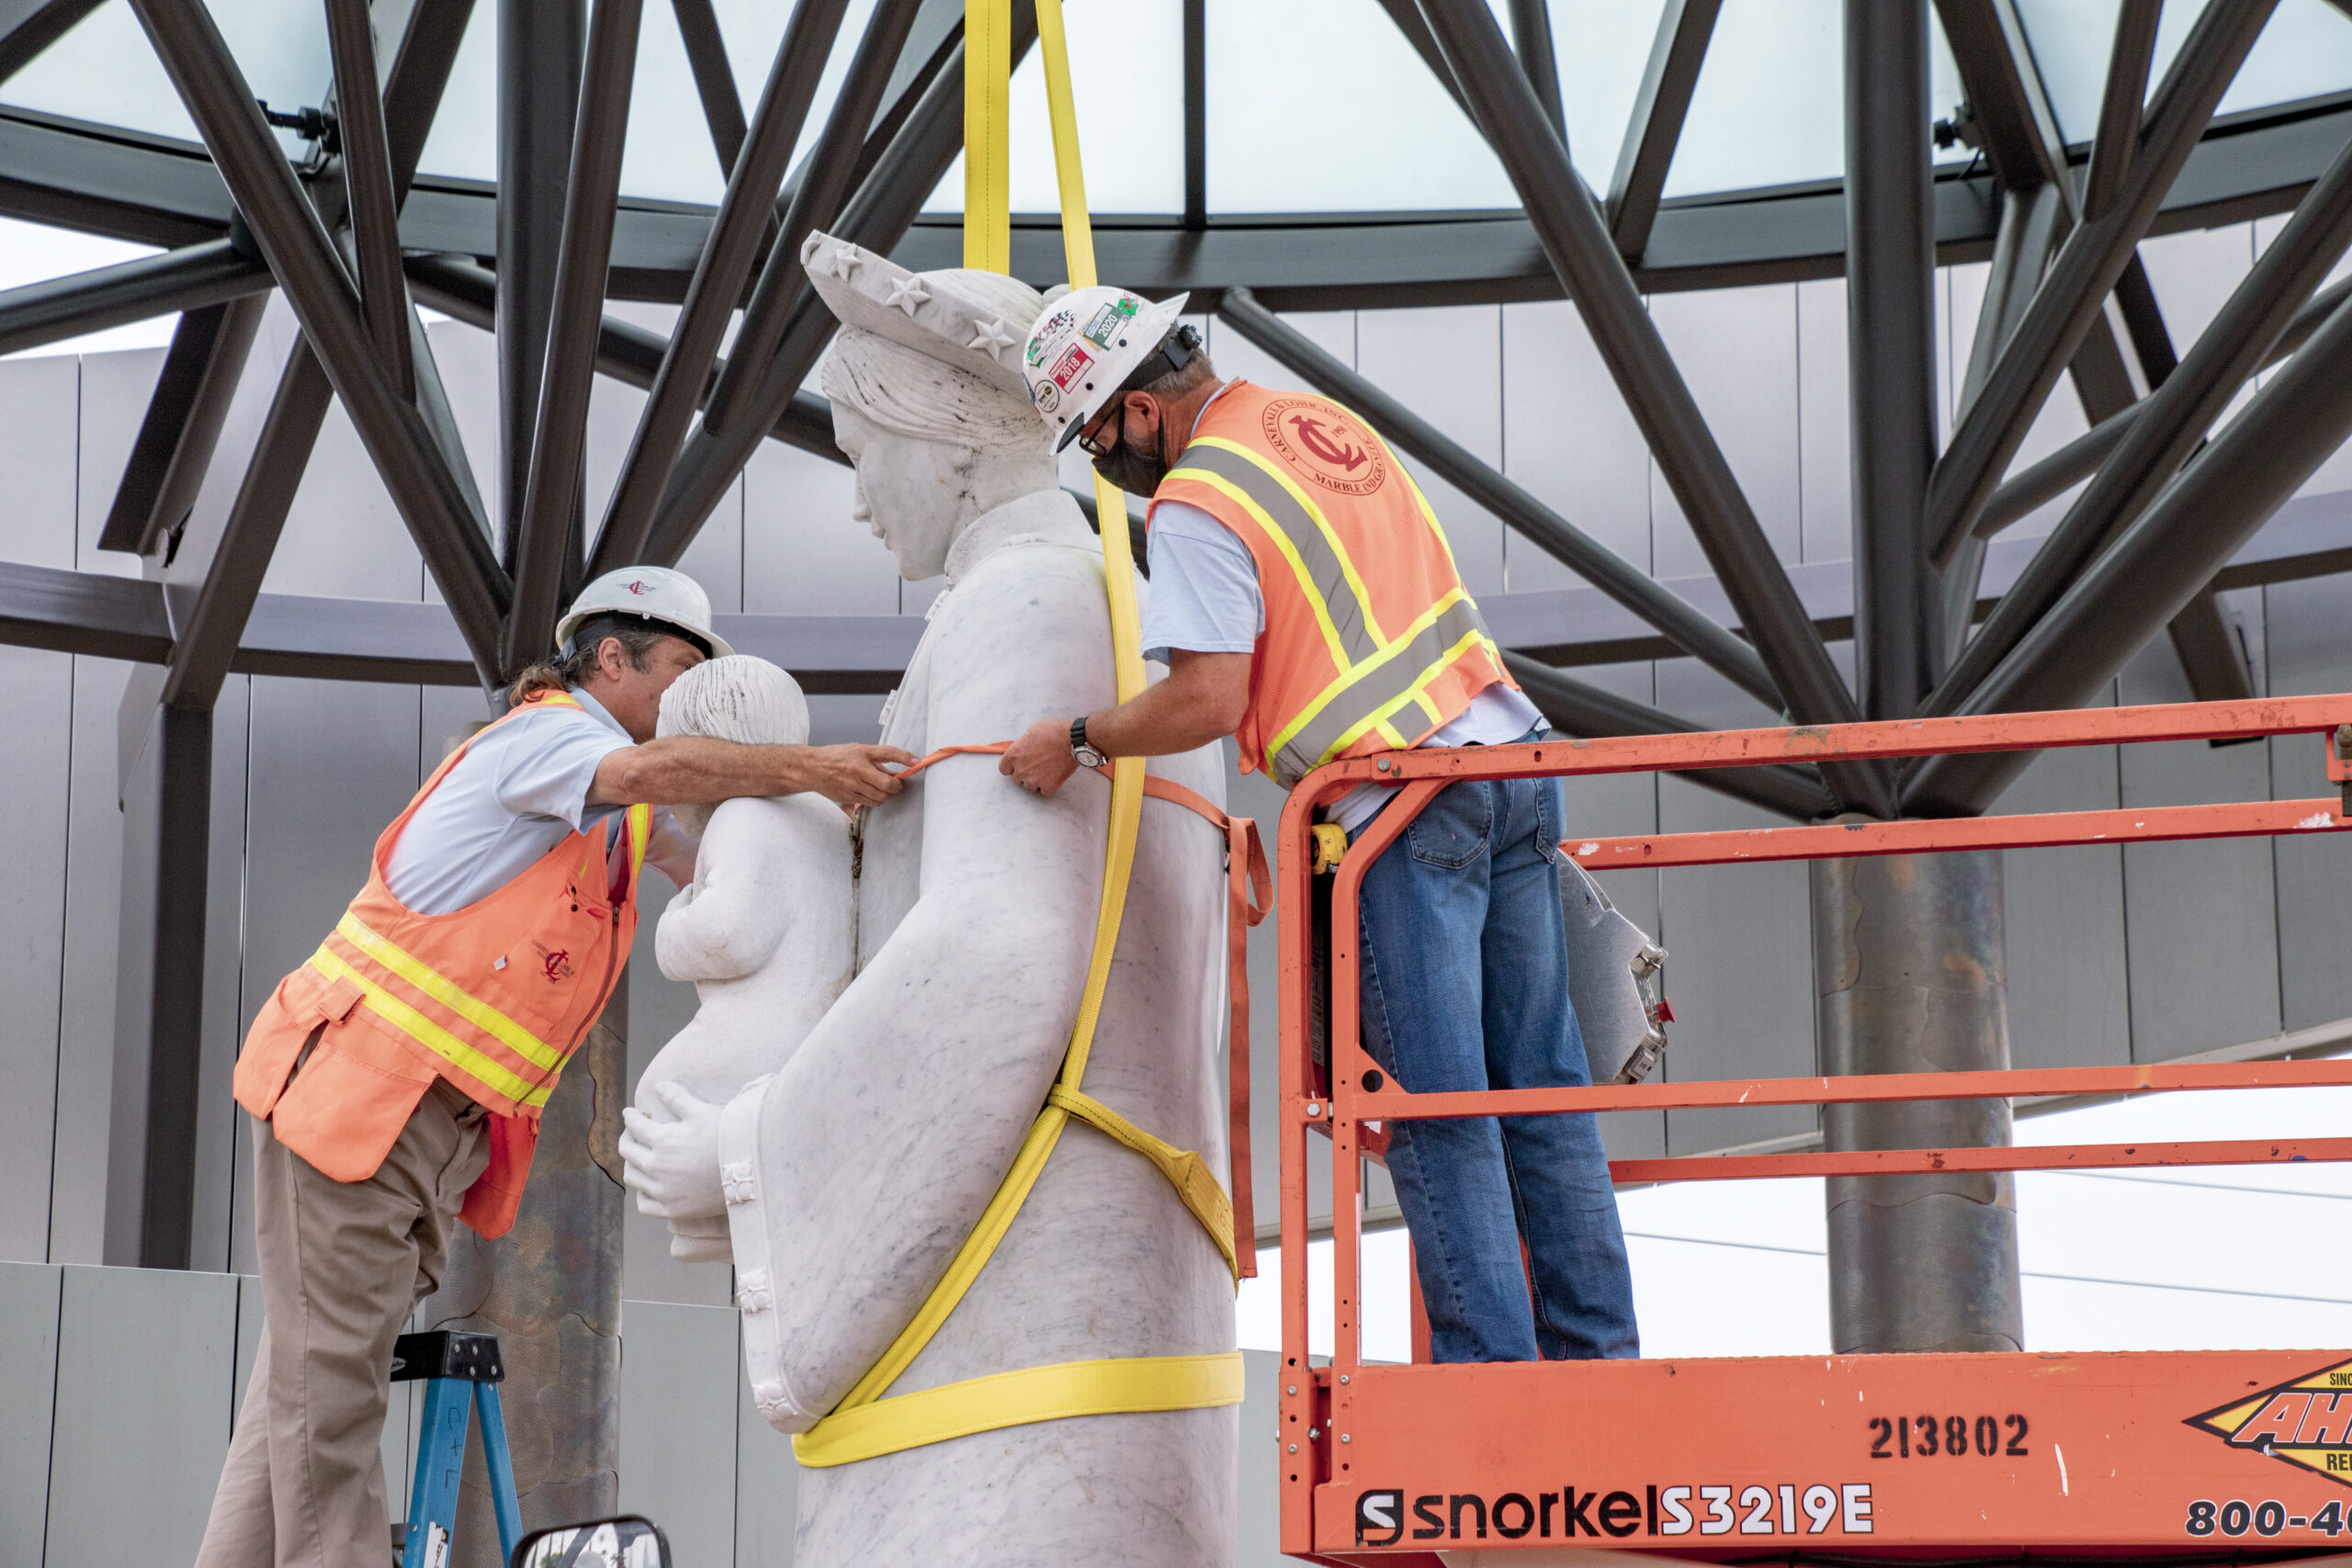 Construction workers gingerly move the Our Lady of La Vang statue closer to her pedestal. Photo courtesy Diocese of Orange. Note: Photo taken during construction.